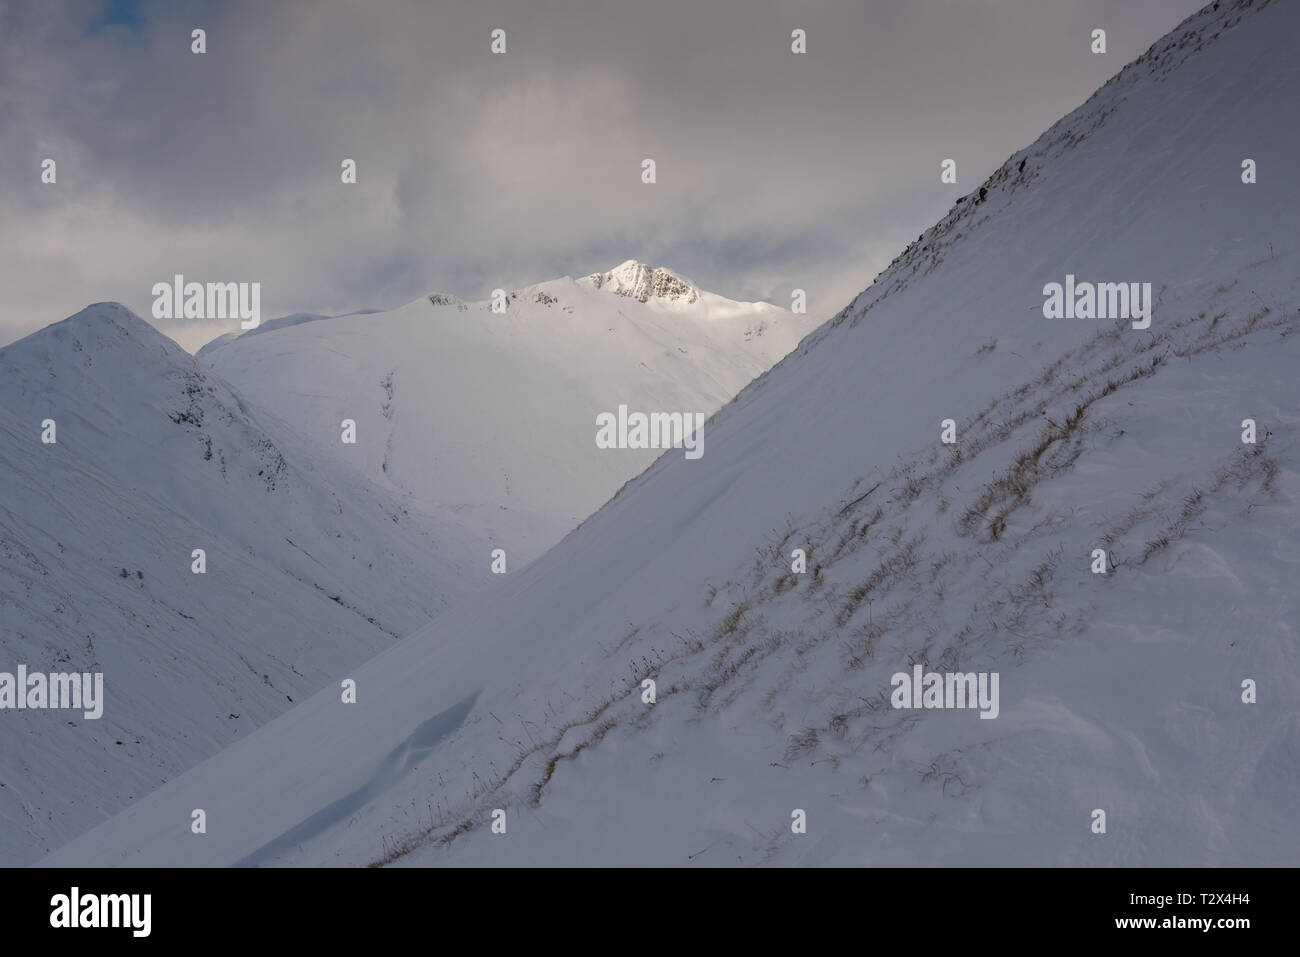 Winter in the Scottish mountains: The Corbett Am Bathach and the Munro Ciste Dhubh from the slopes of A Chraileag, Scotland - Stock Image